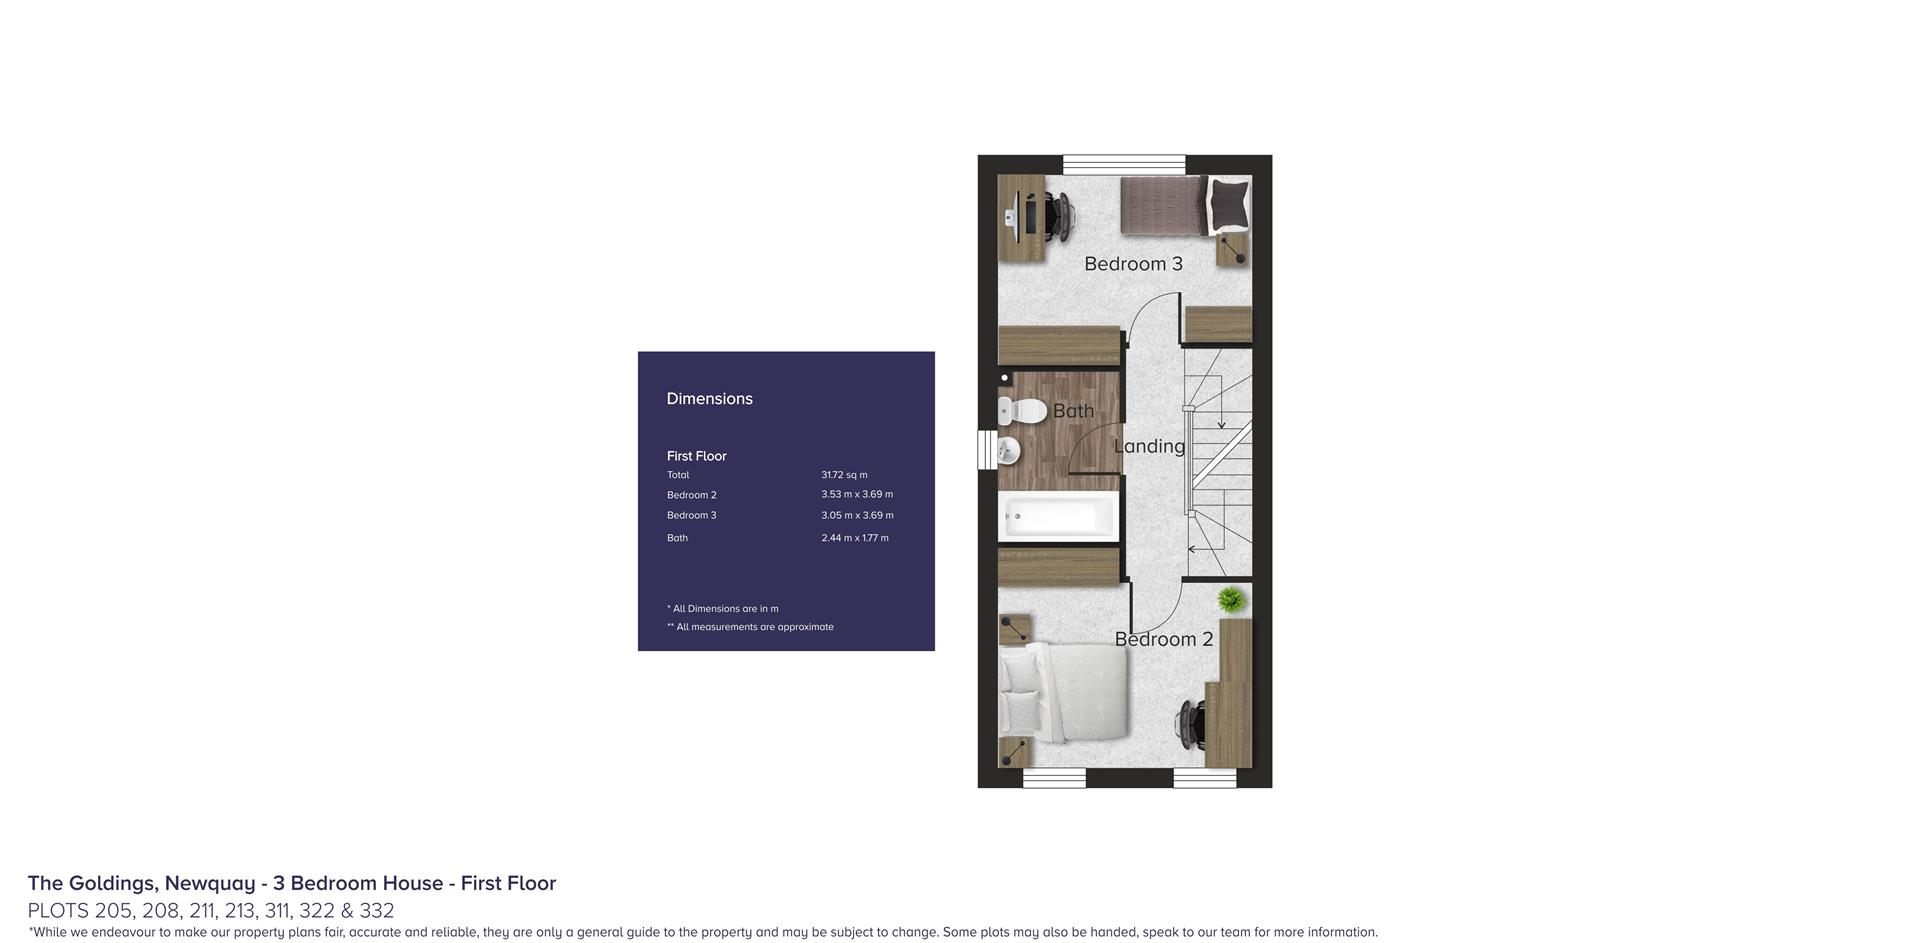 The Goldings, Newquay_Plots 205, 208, 211, 213, 31